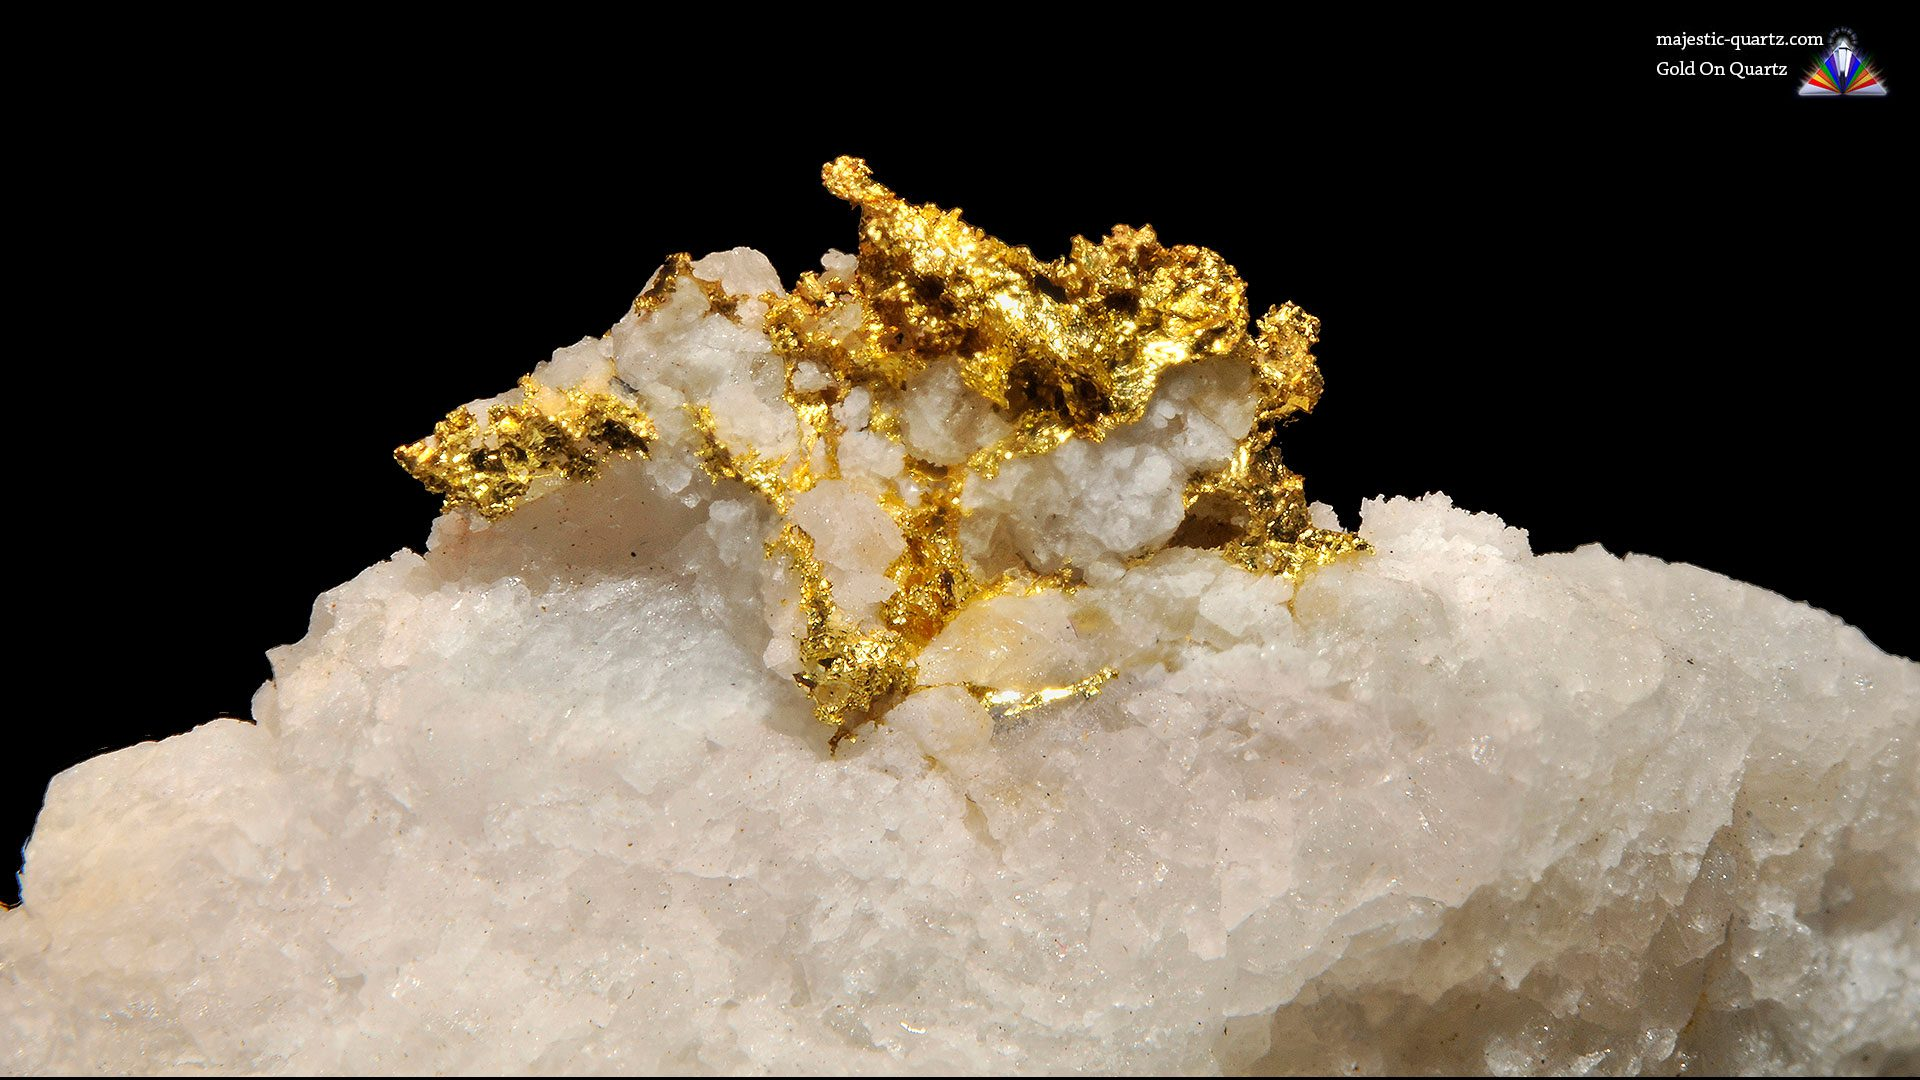 Gold Crystal Specimen - Mineral Specimen (Original Photograph by Parent Géry)